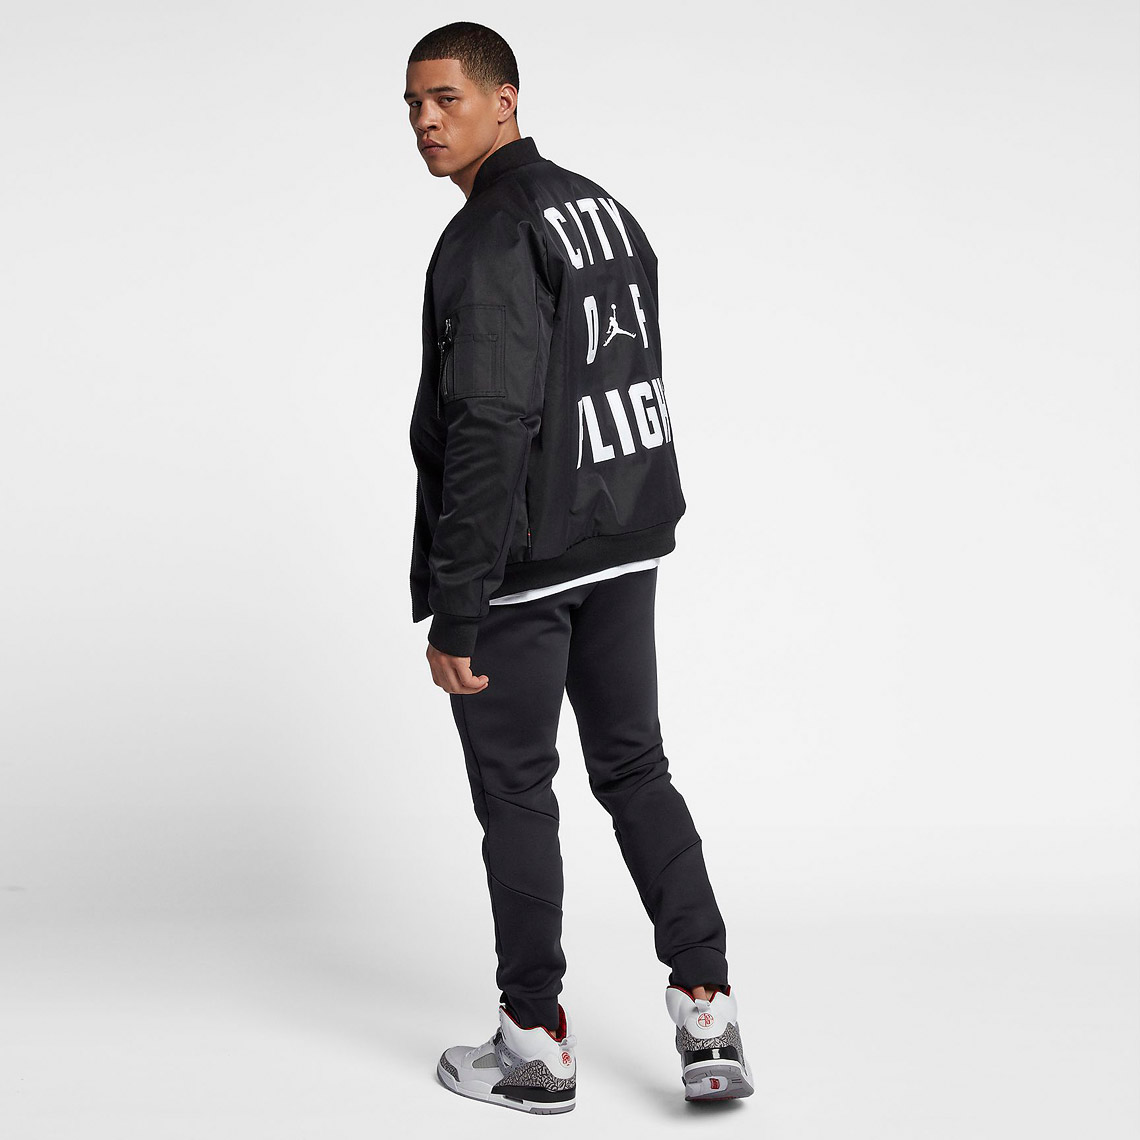 jordan-sportswear-city-of-flight-mens-jacket-3MOVYld